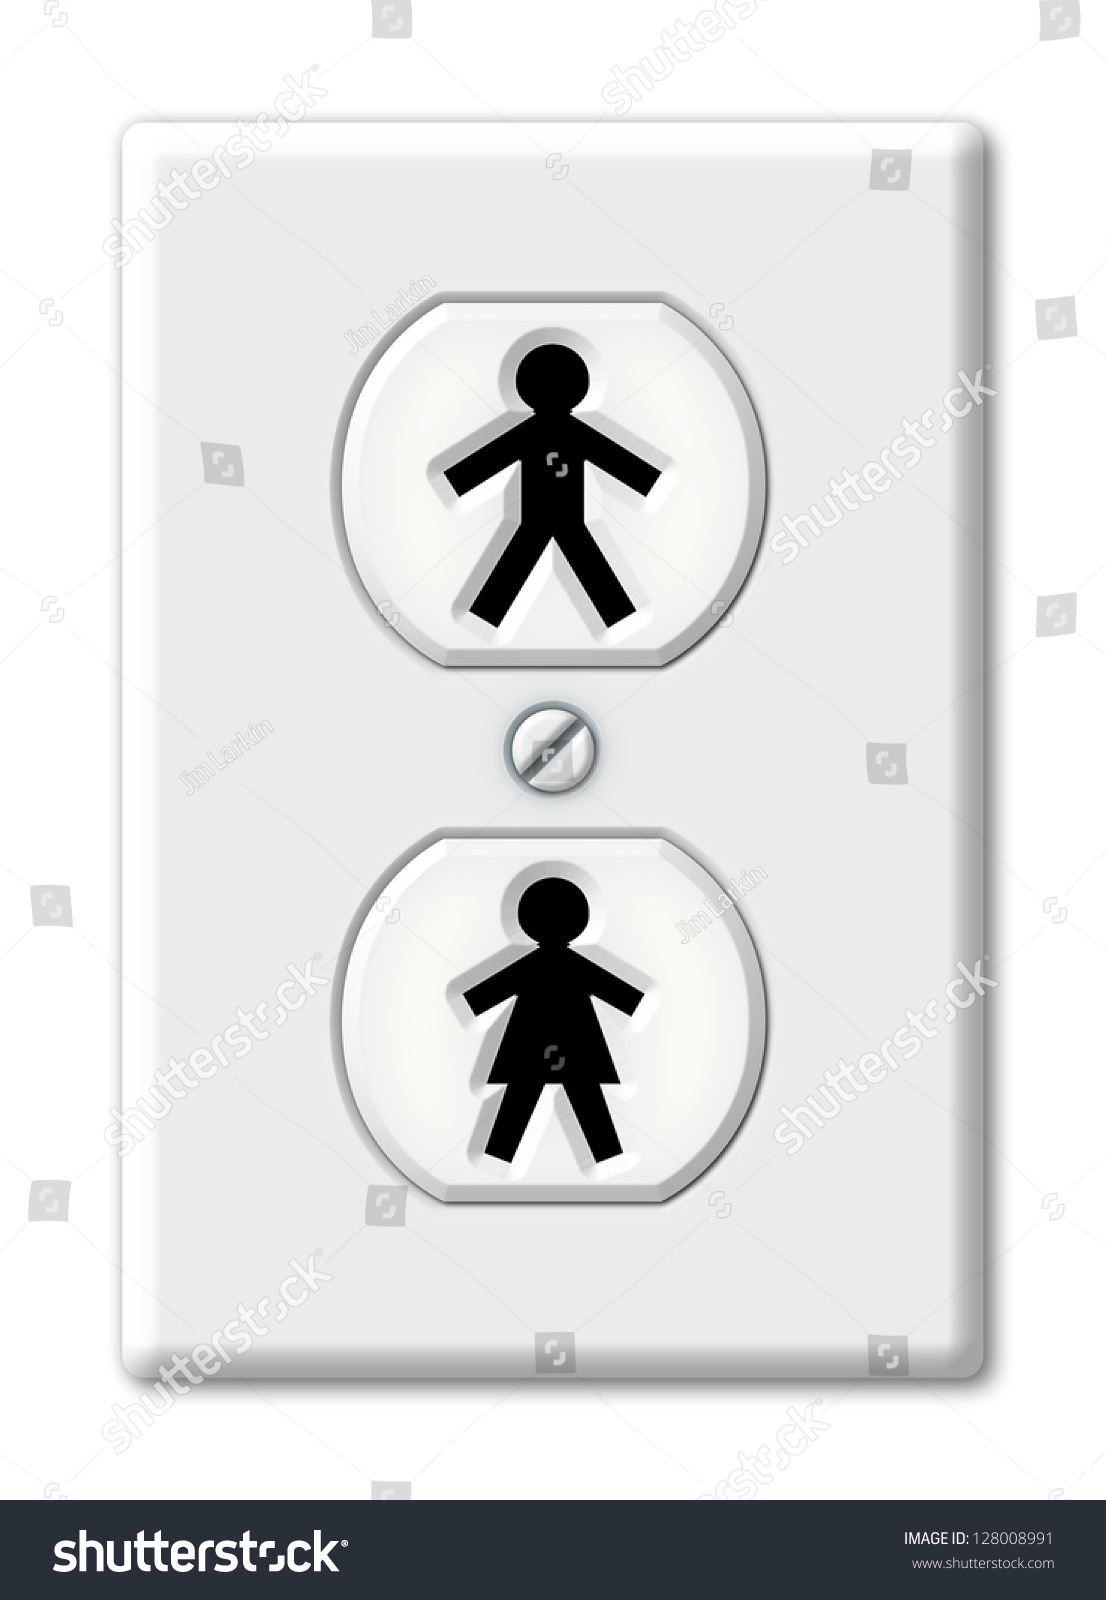 Illustration electrical outlet symbols male female stock illustration of an electrical outlet with symbols for male and female biocorpaavc Choice Image